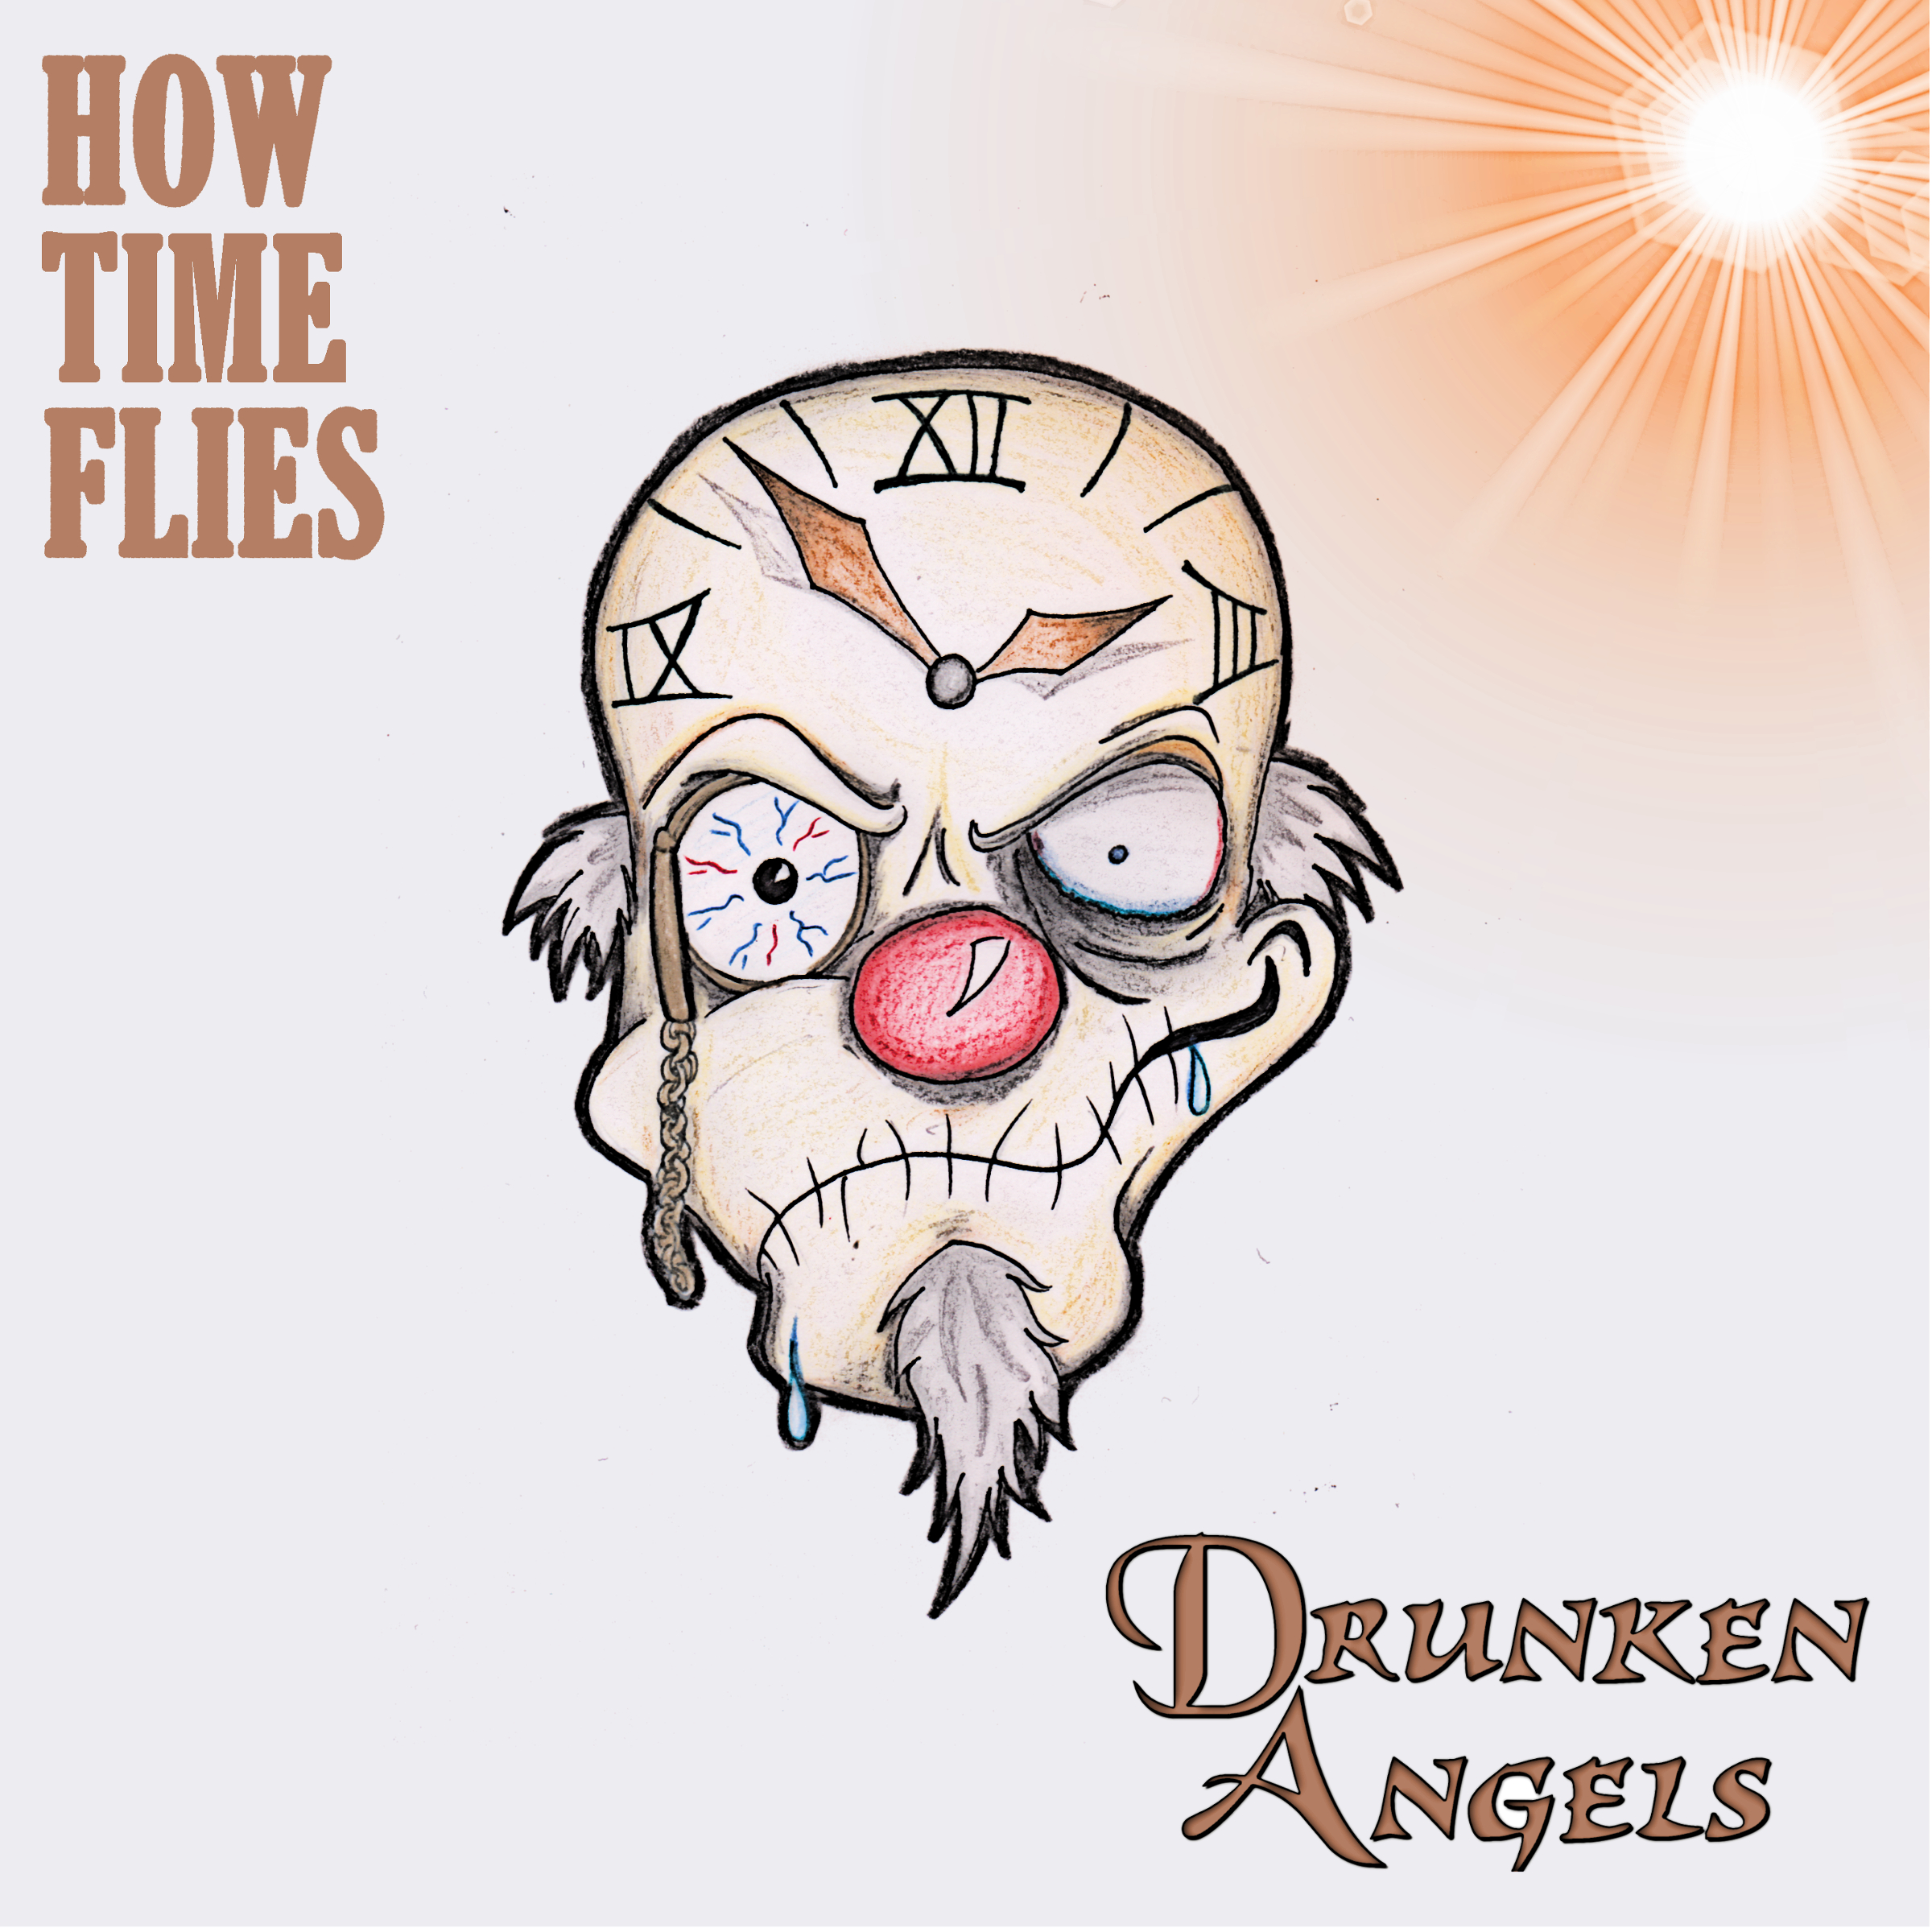 DRUNKEN ANGELS - How time flies(Best of, Remastered) // Album, 2016/11/11 // MMP007 // EAN: 9008798218707